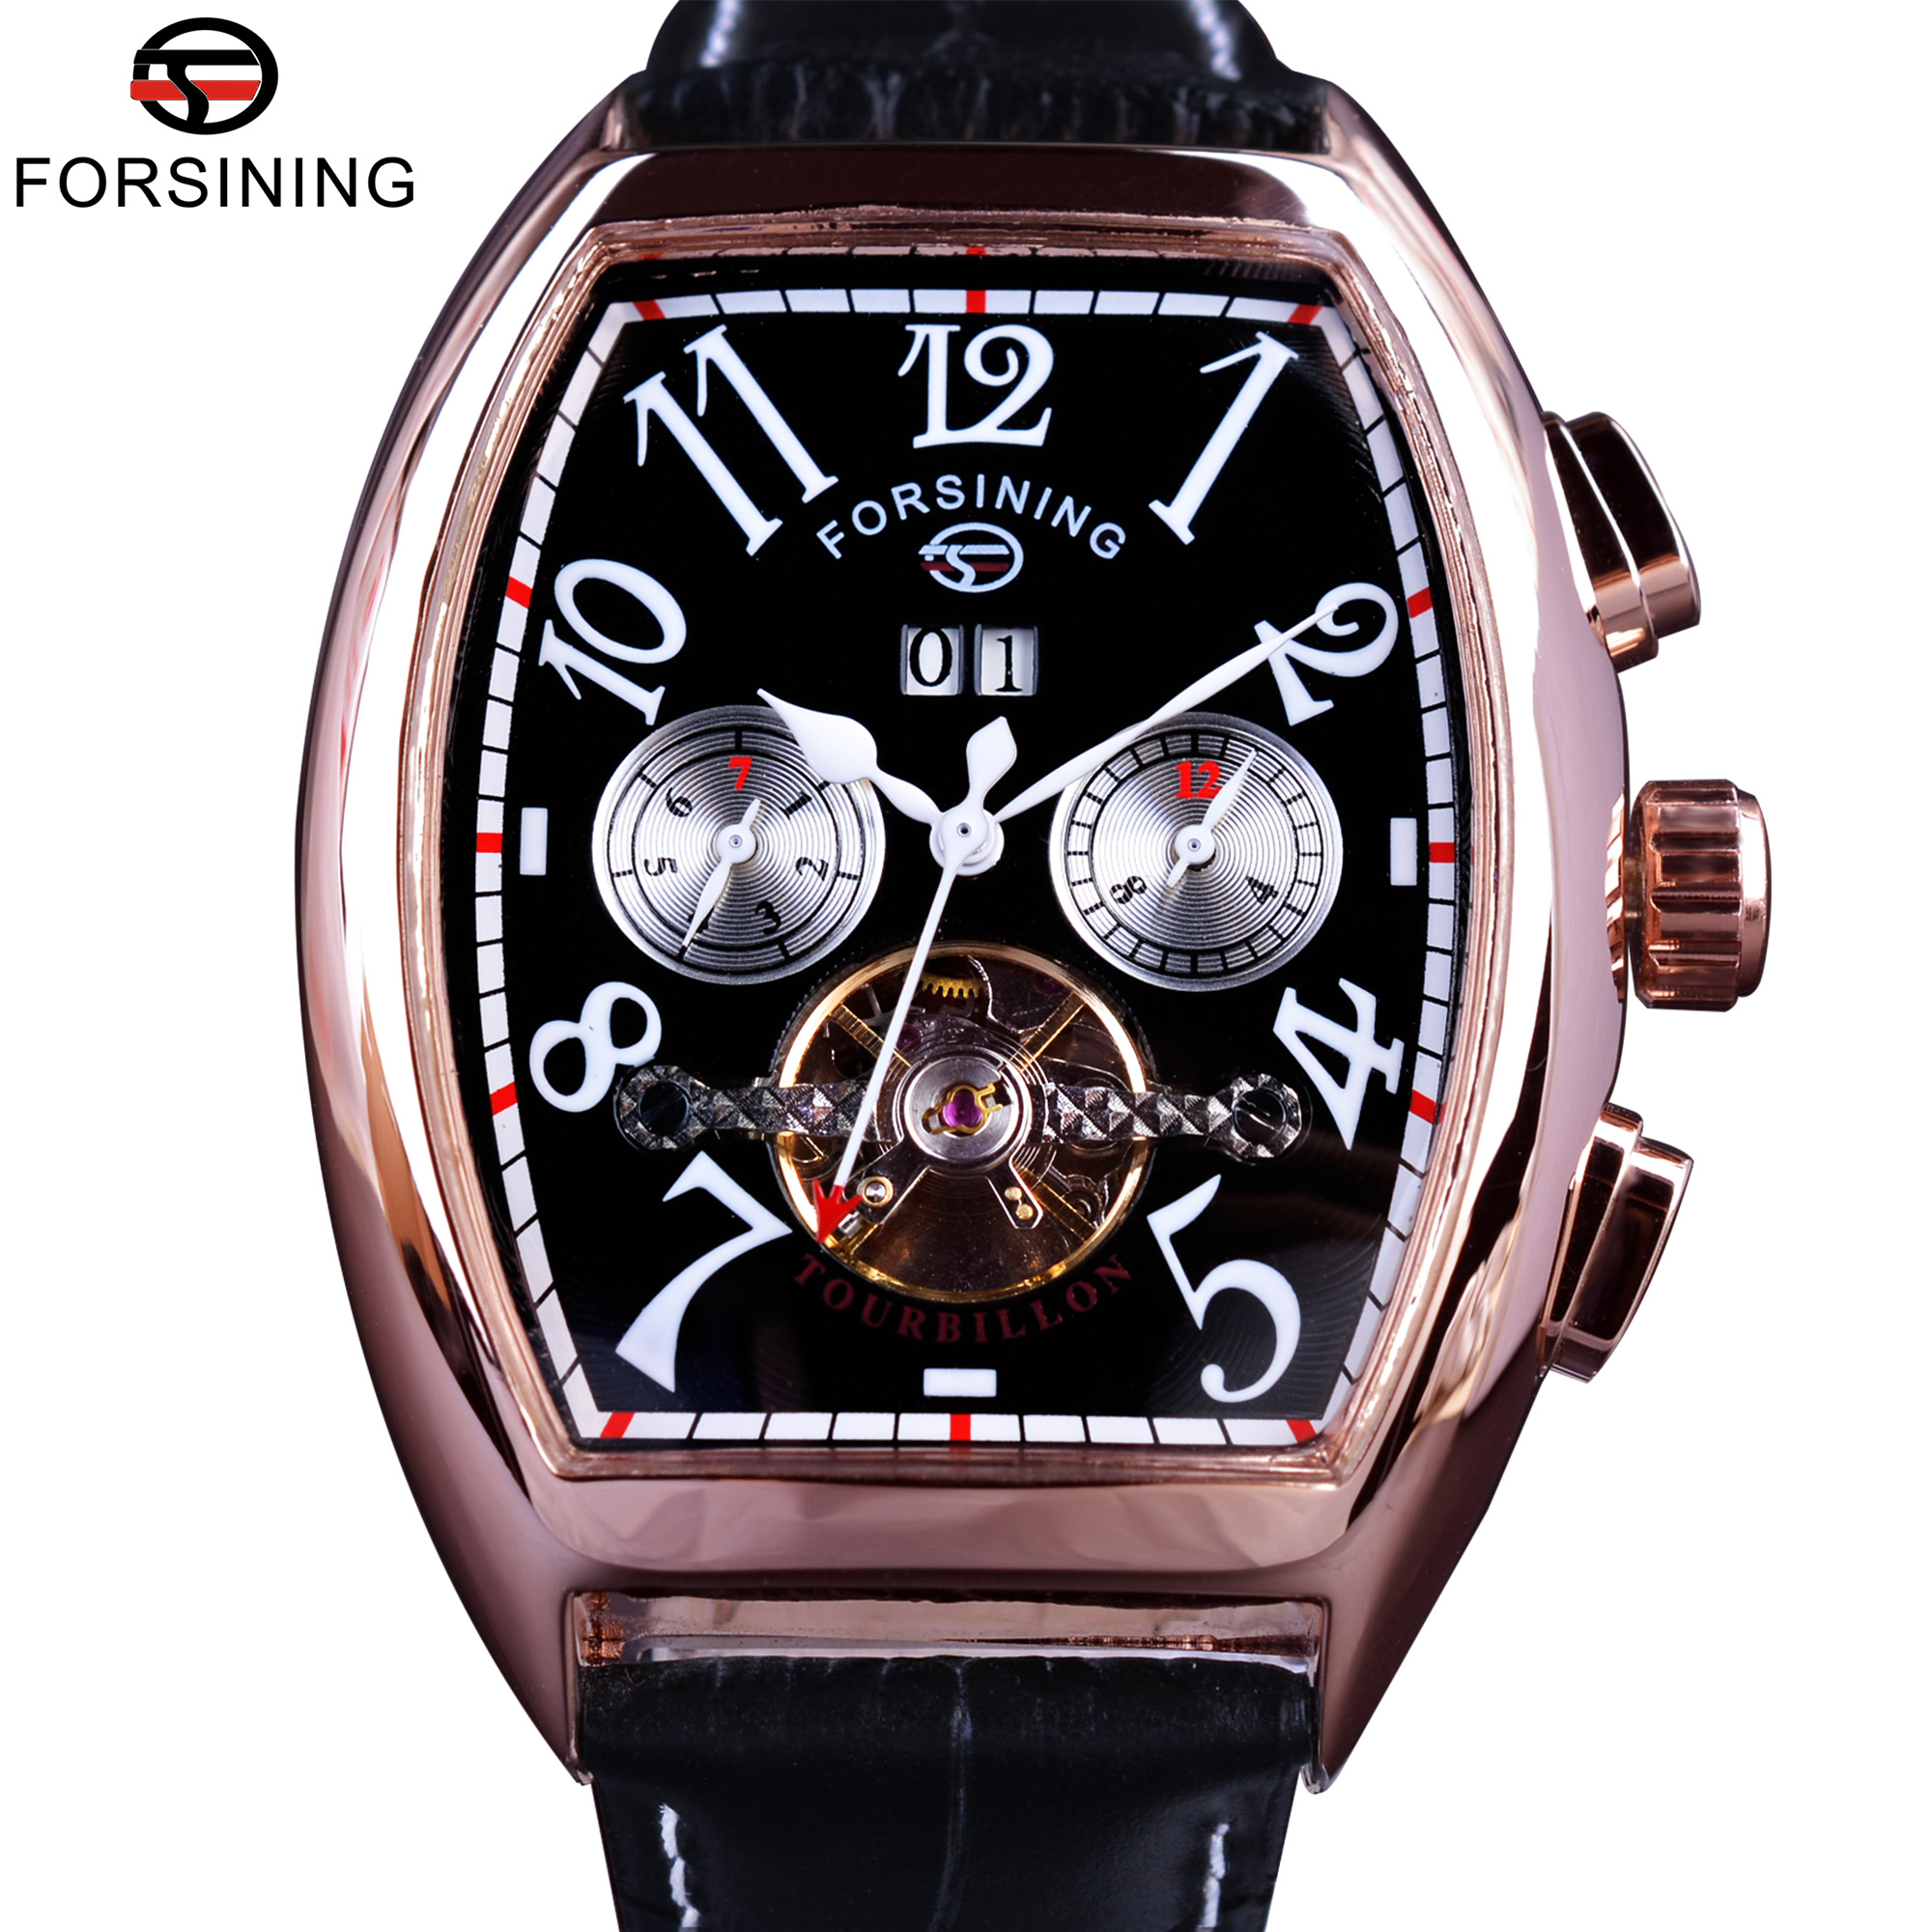 Forsining Date Month Display Rose Golden Case Mens Watches Top Brand Luxury Automatic Watch Clock Men Casual Fashion Clock Watch<br><br>Aliexpress